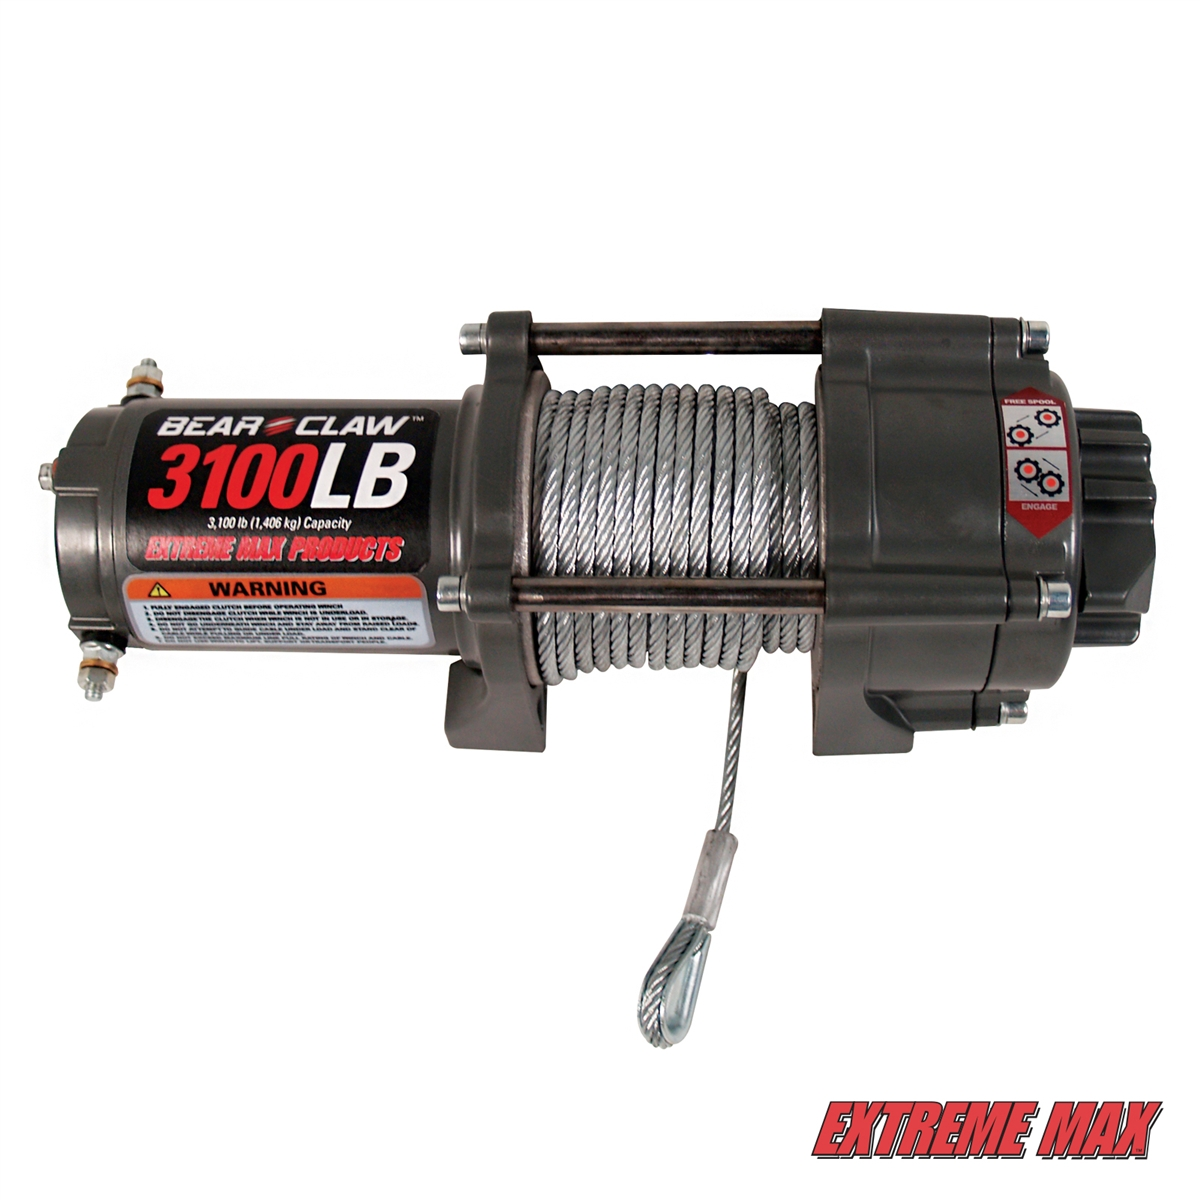 5600.3072 3 extreme max 5600 3072 bear claw atv winch 3100 lb bear claw winch wiring diagram at edmiracle.co